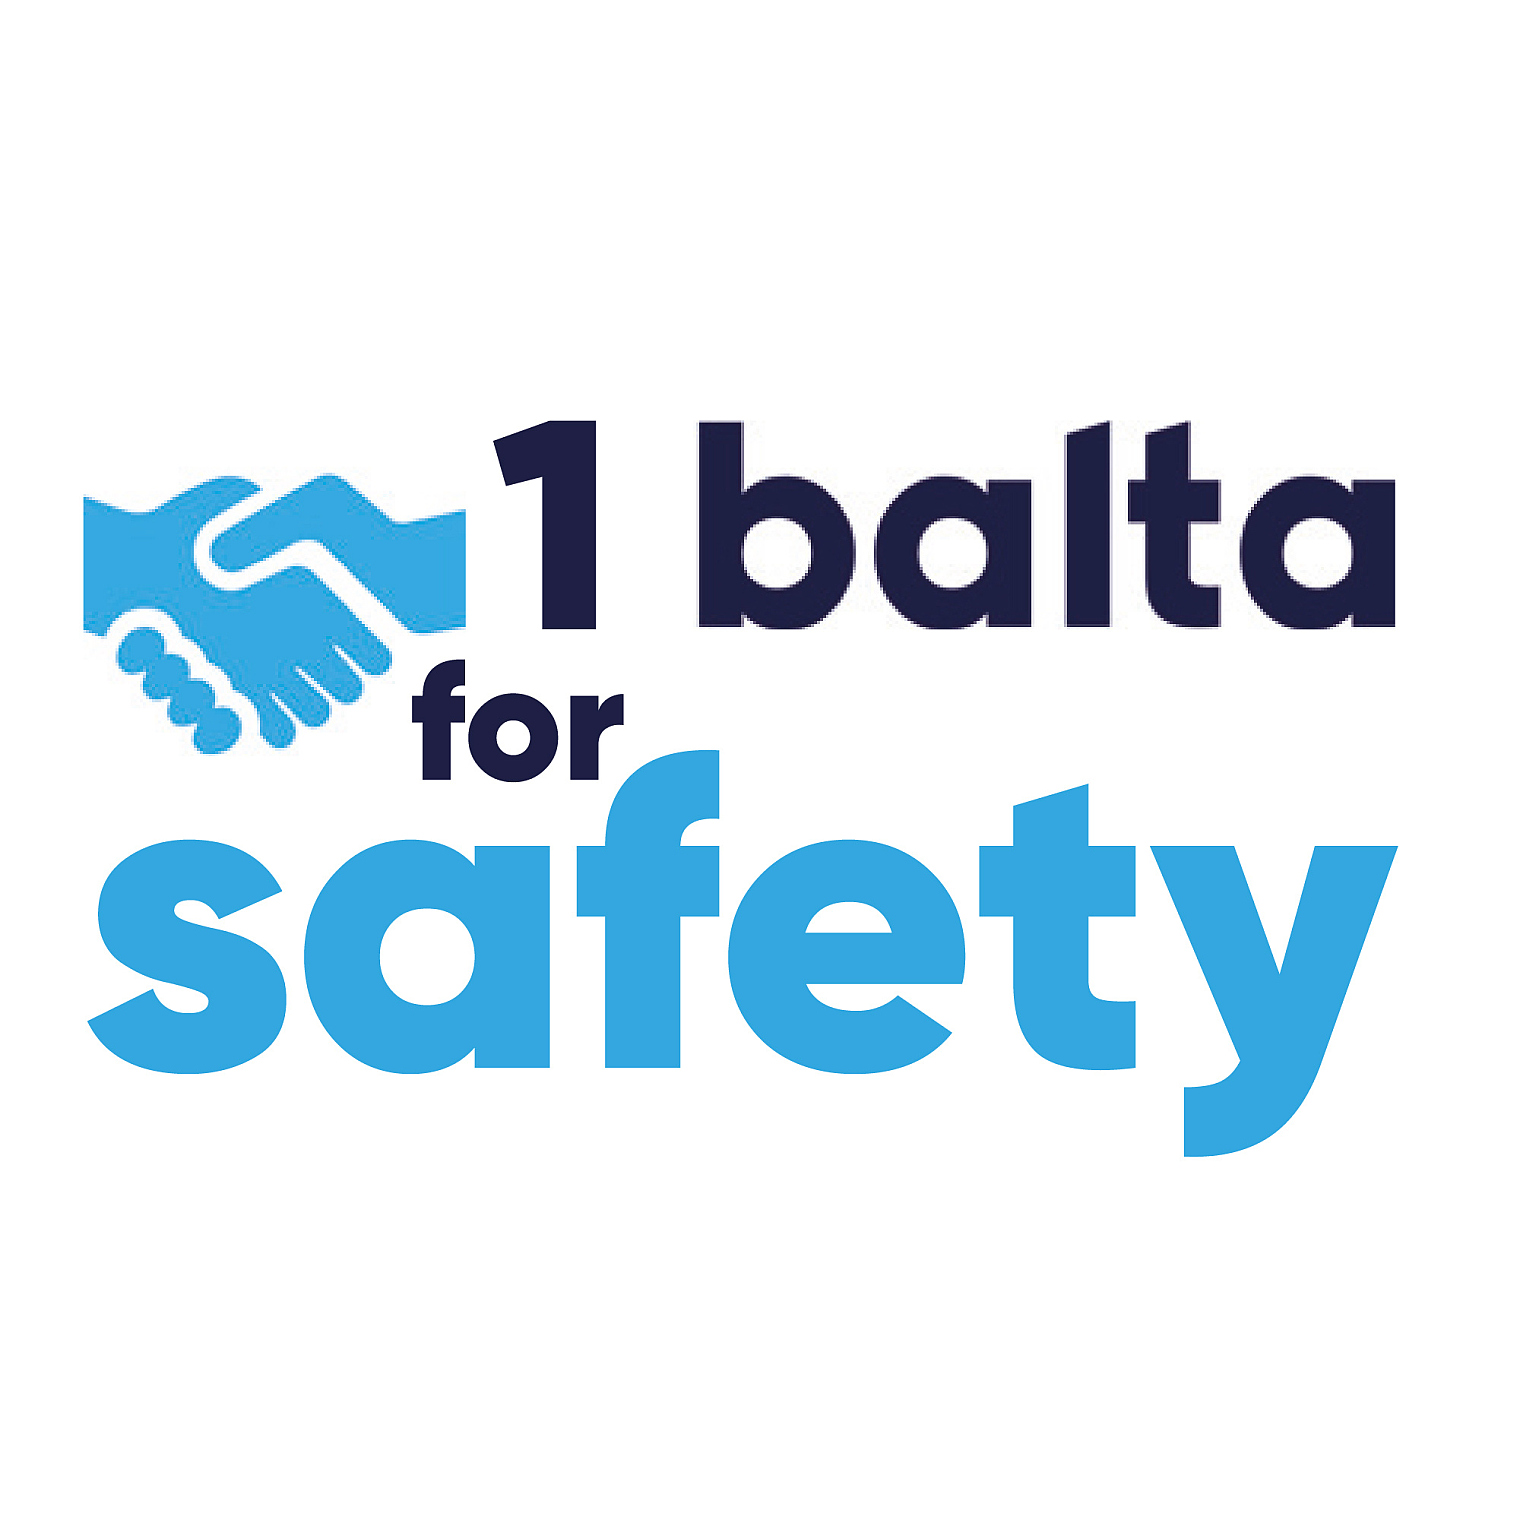 One balta for safety